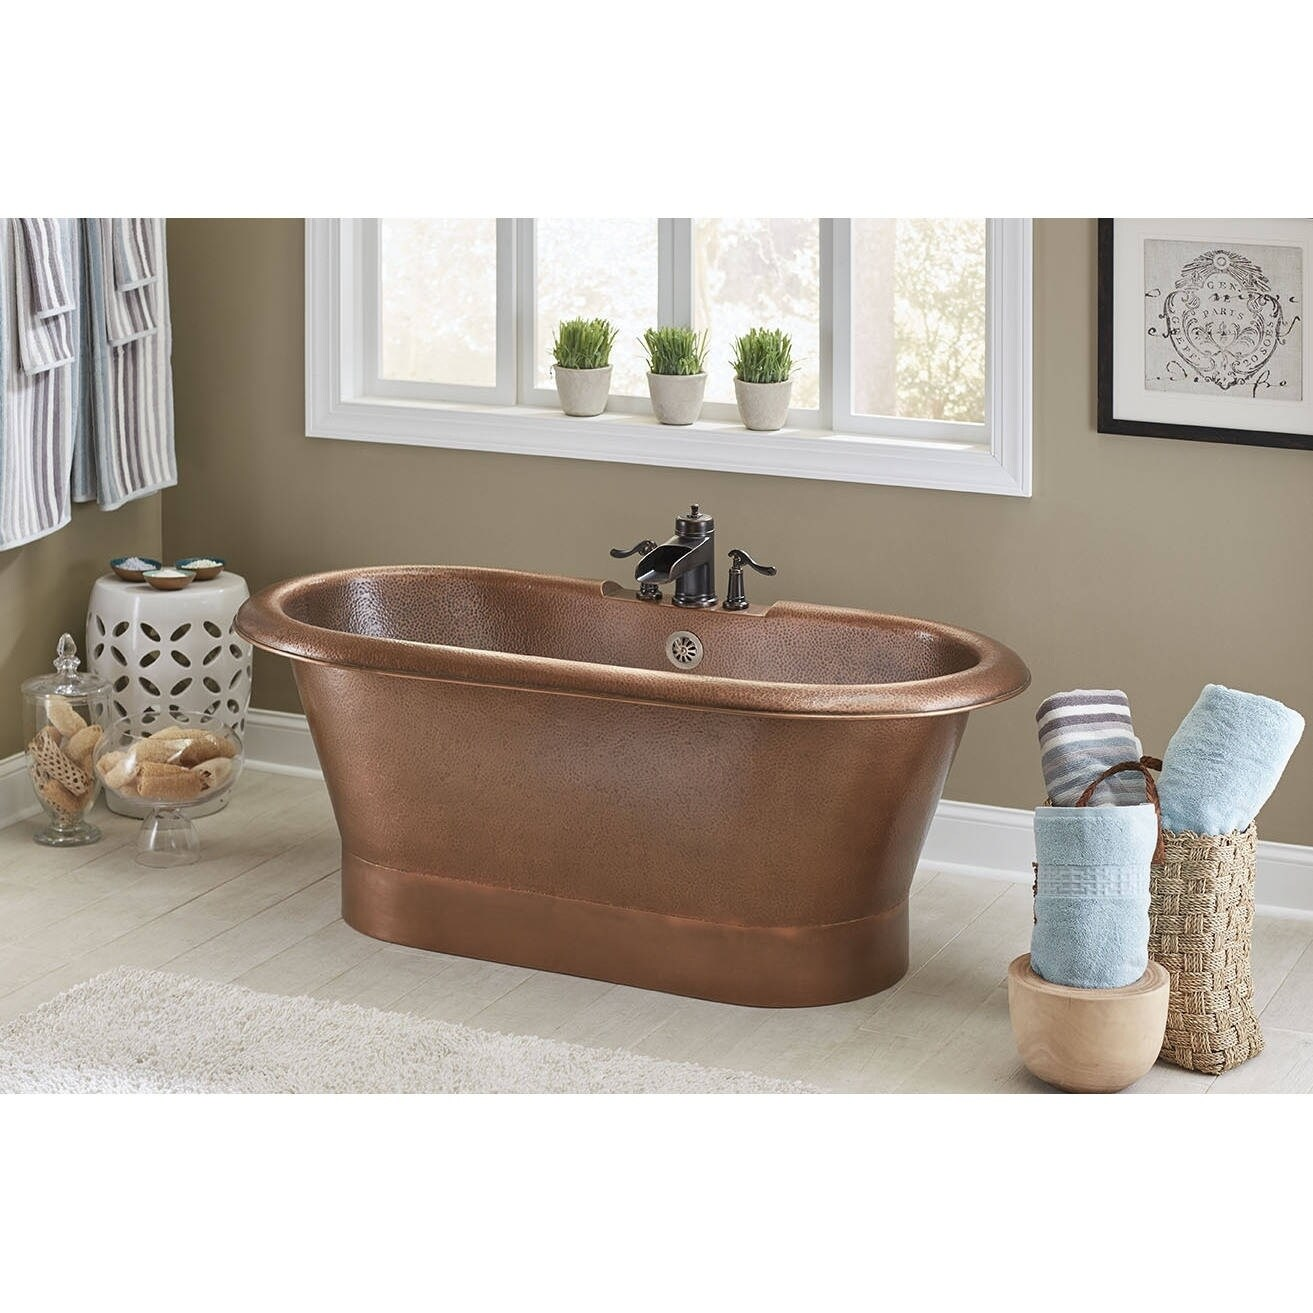 Shop Sinkology Thales Copper Freestanding Bathtub With Overflow 3 Hole Faucet Deck In Antique Copper Brown Overstock 14506705